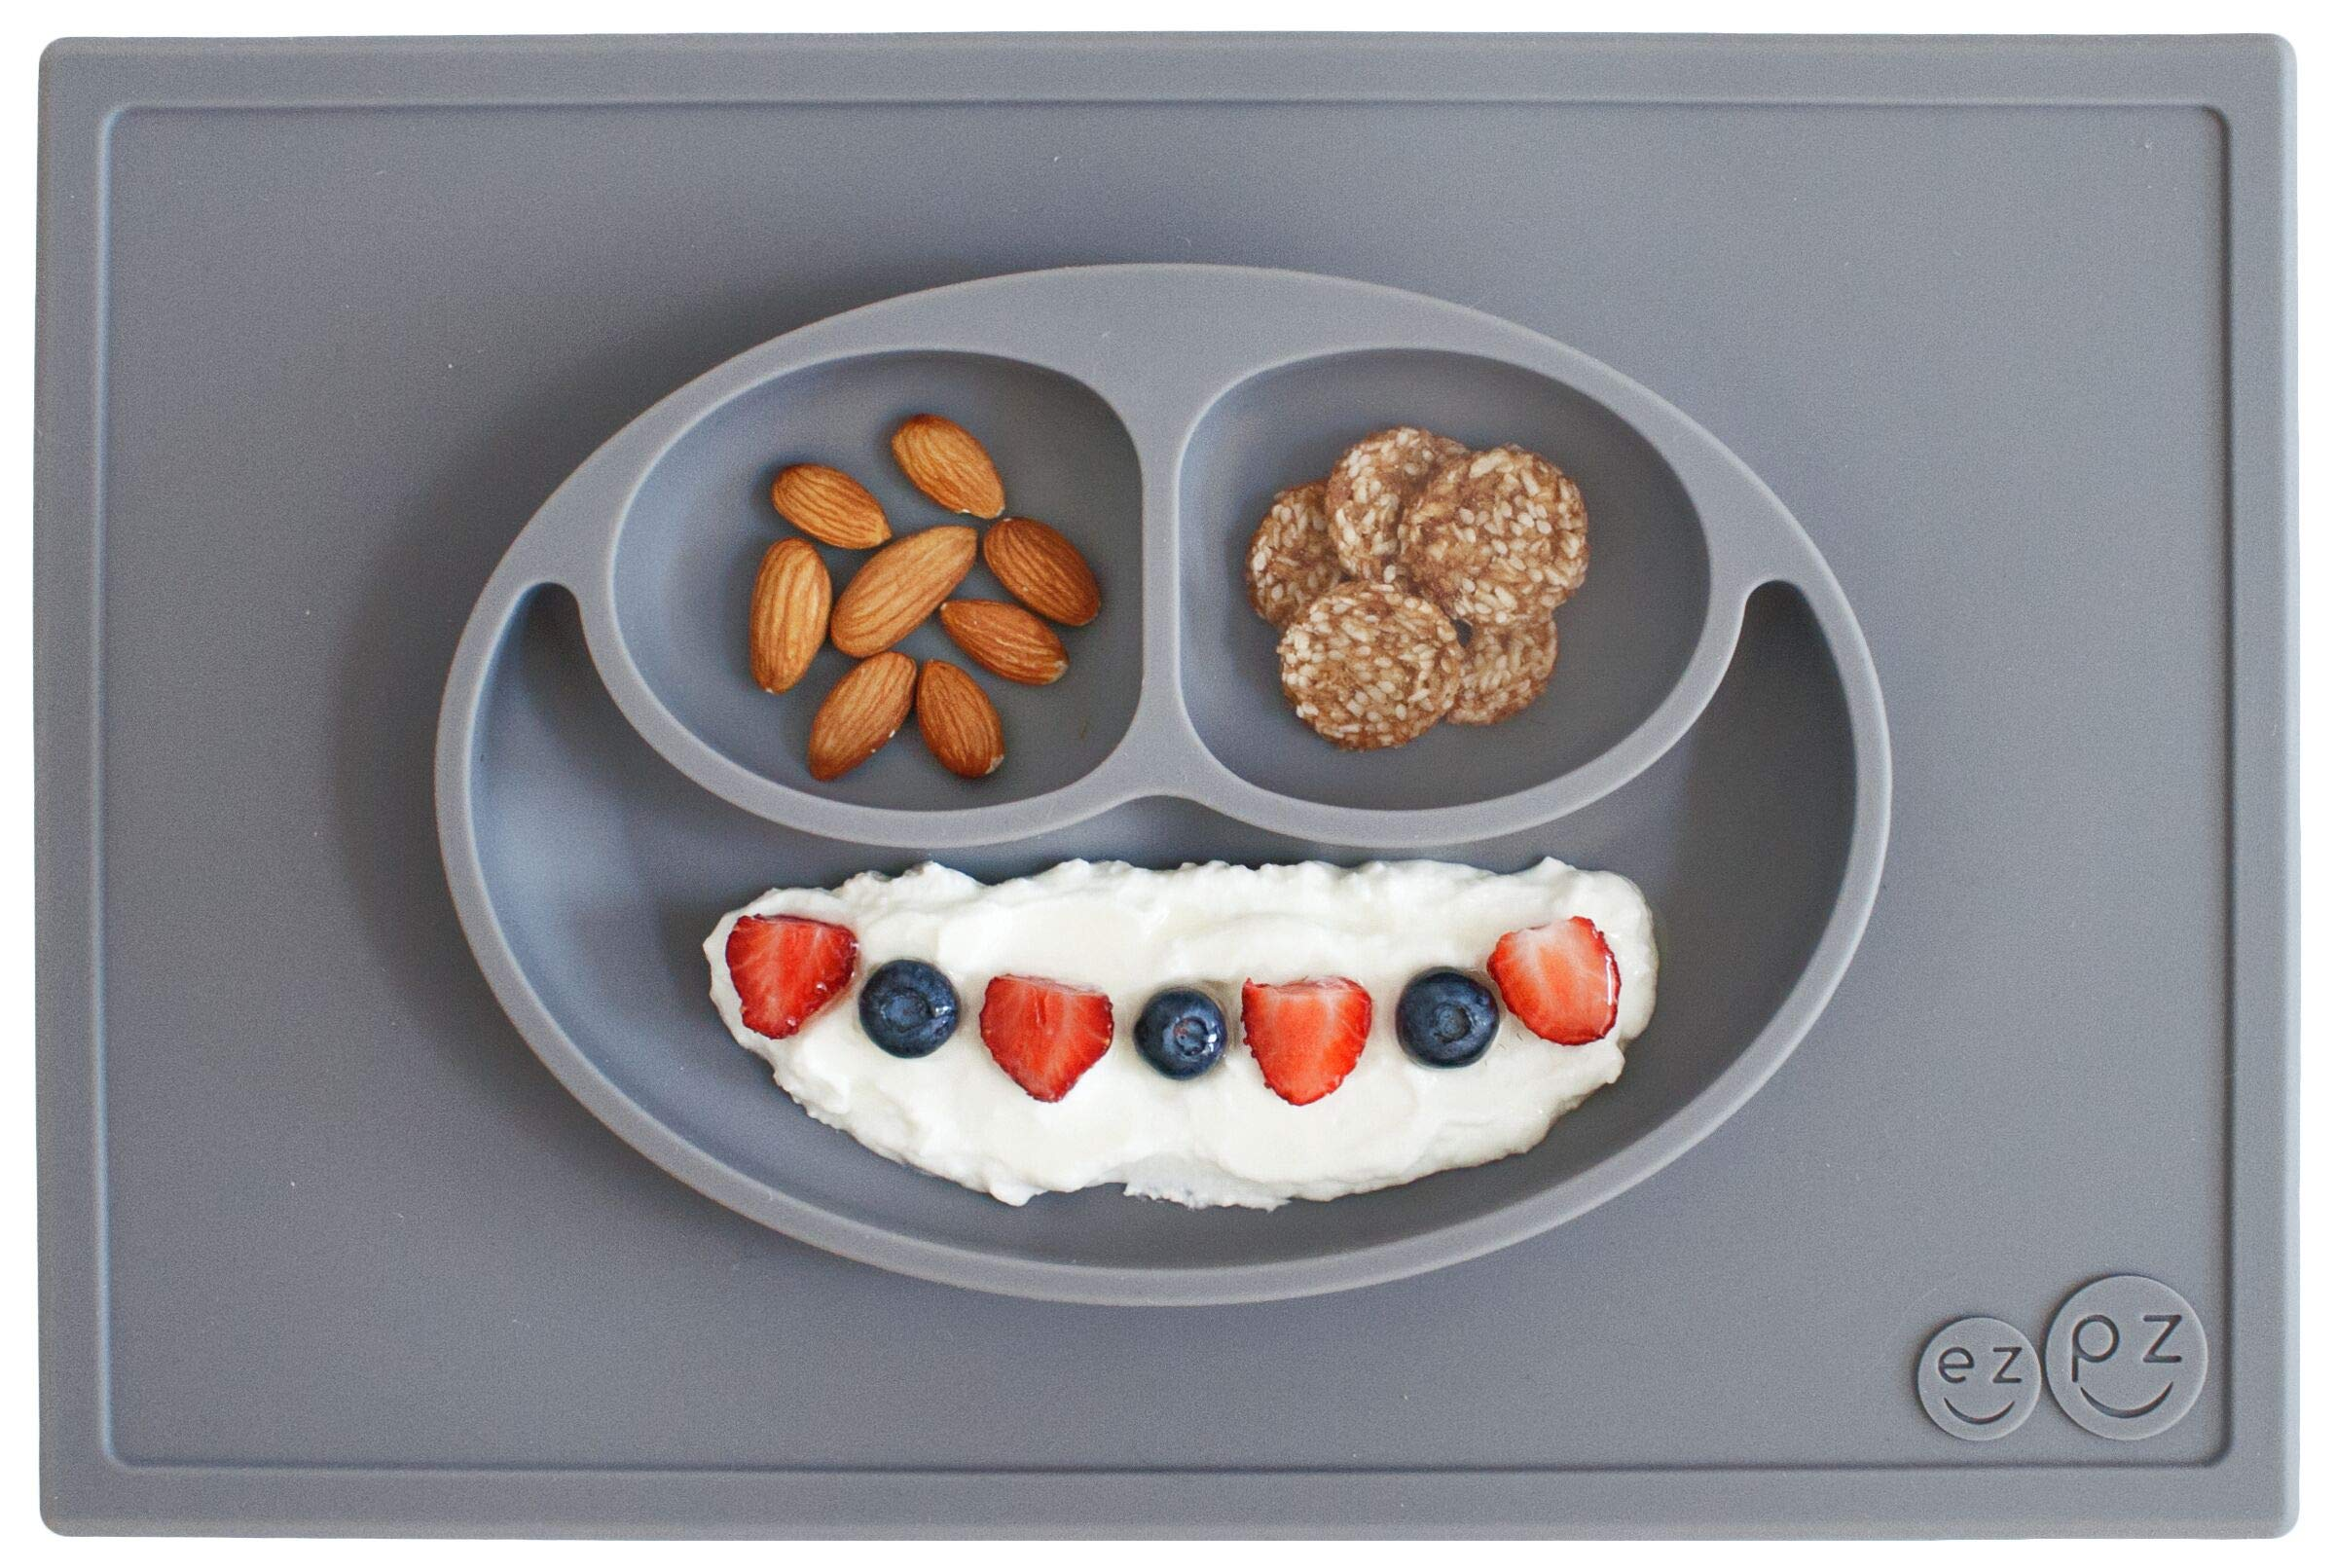 ezpz Happy Mat - One-Piece Silicone placemat + Plate (Gray) by ezpz